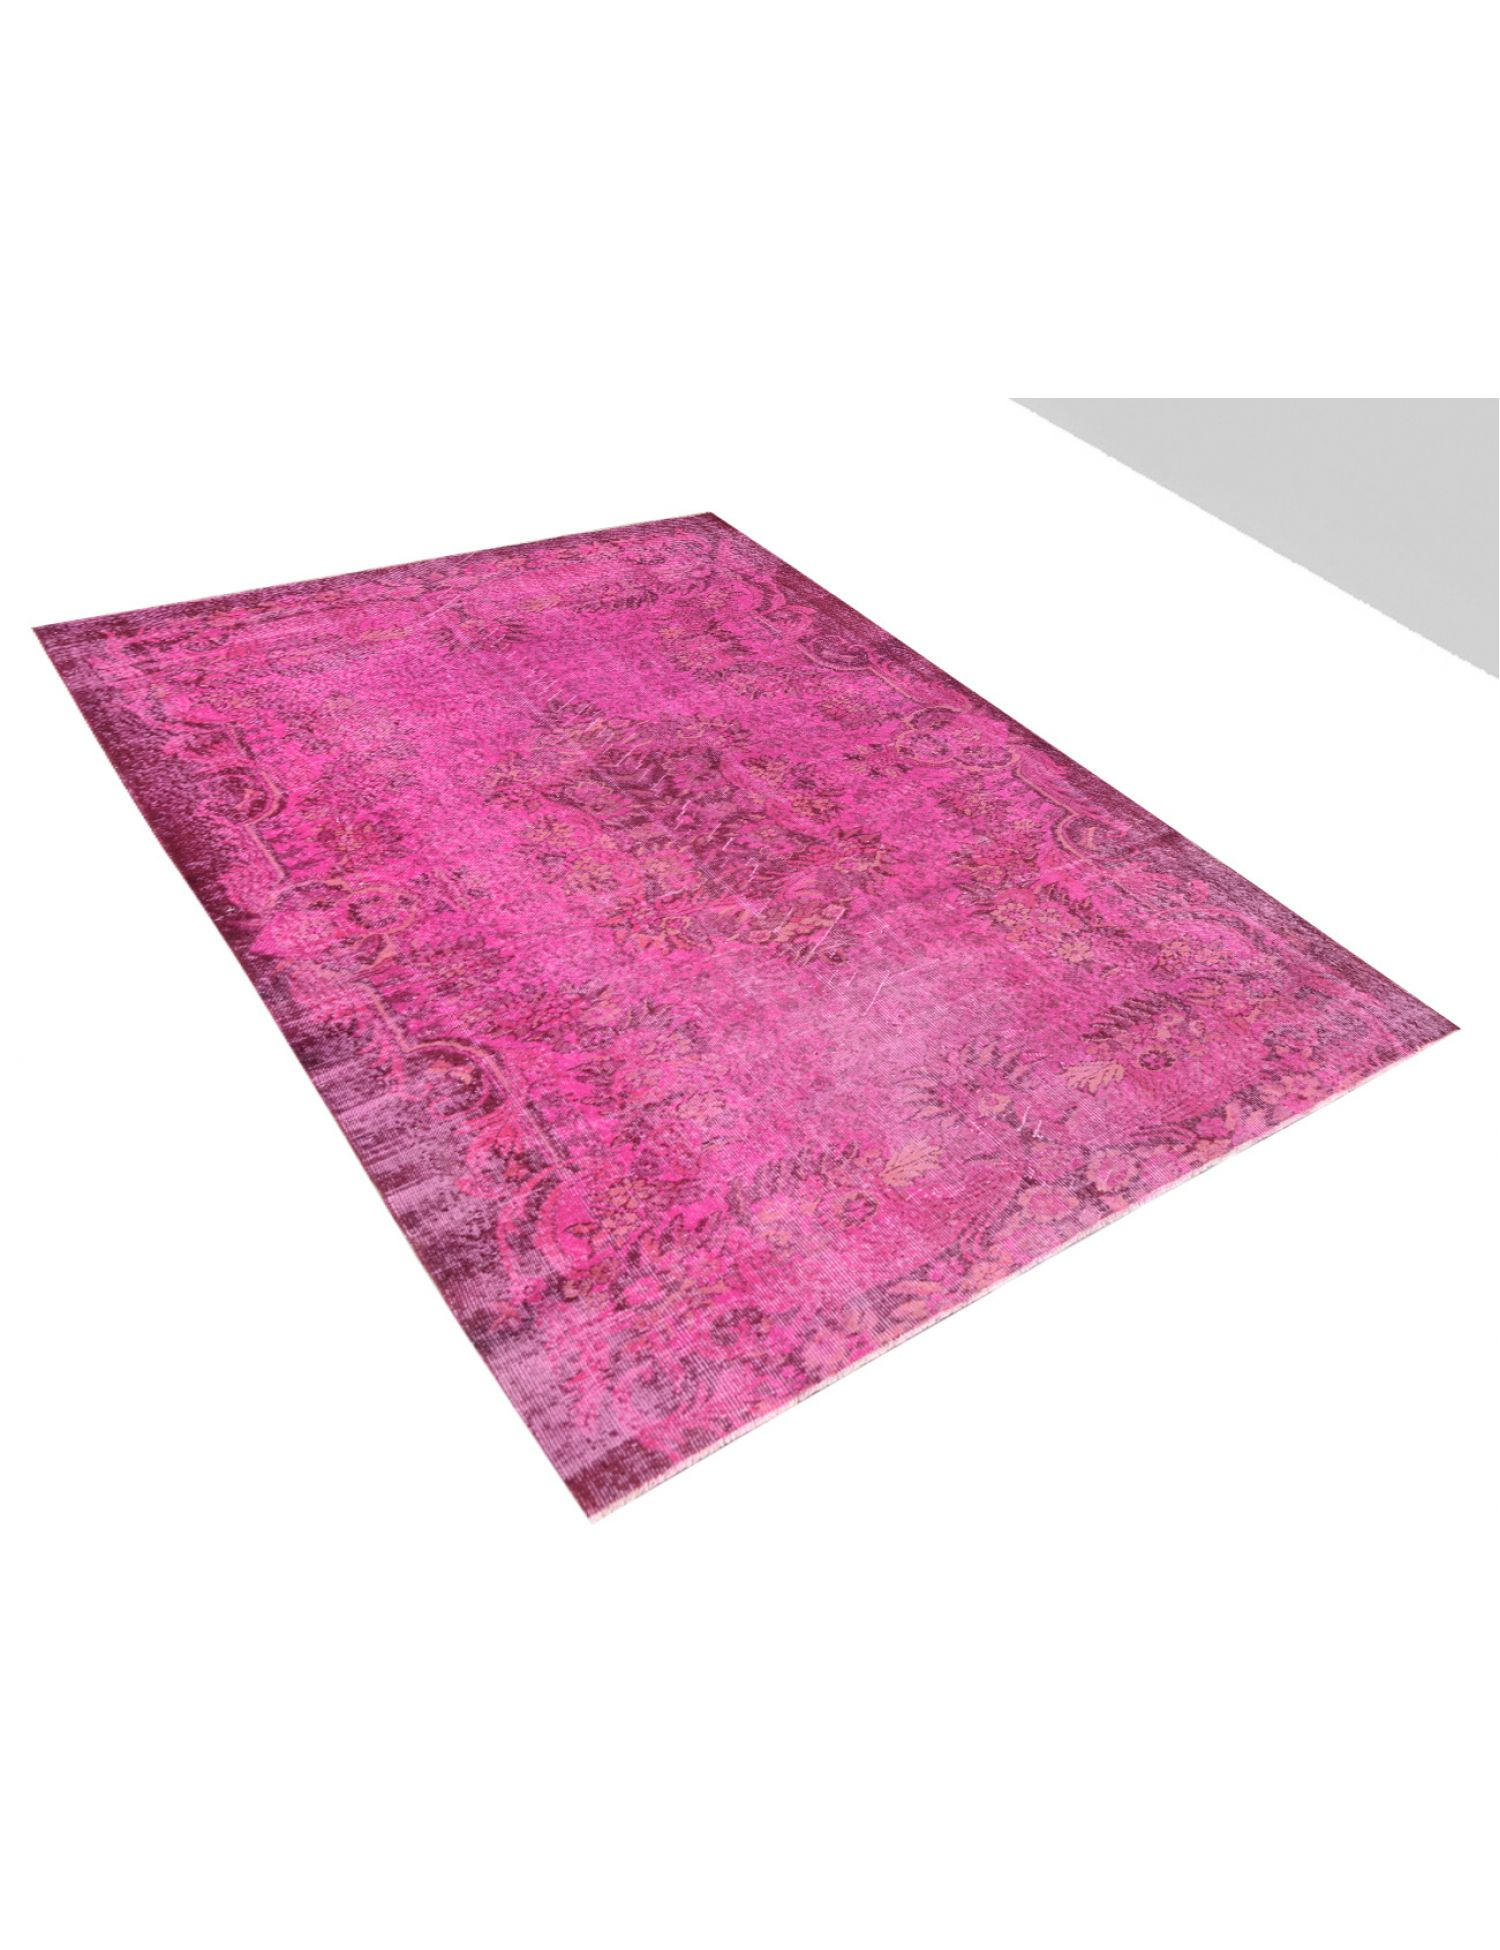 Vintage Carpet  purple <br/>292 x 168 cm